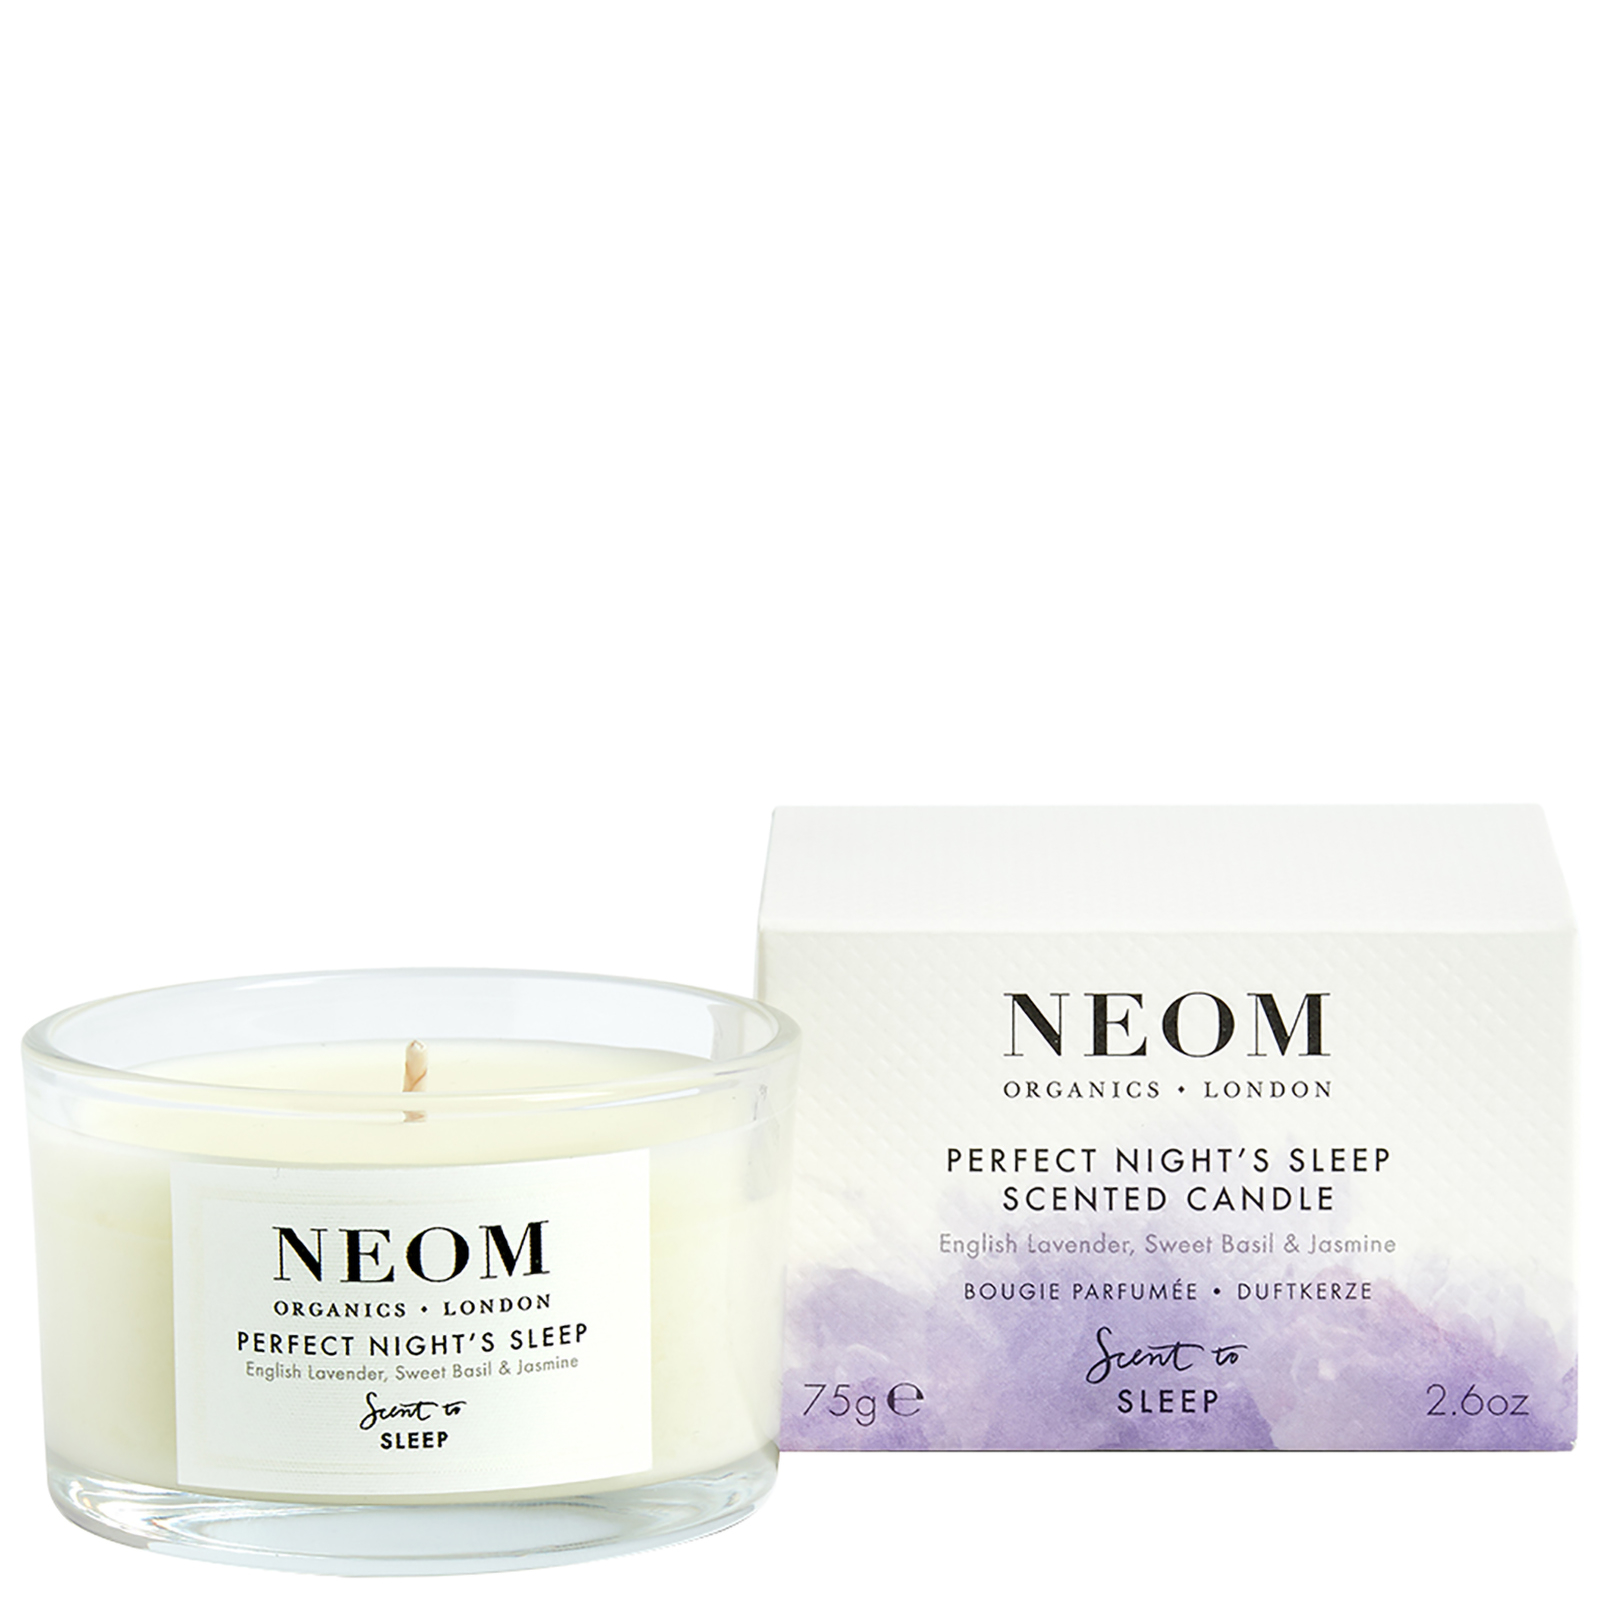 Neom Organics London Scent To Sleep Tranquillity Scented Candle Deryan Toddler Luxe Cream Pueter Travel Sleeping Cot Bed 75g Gifts Sets